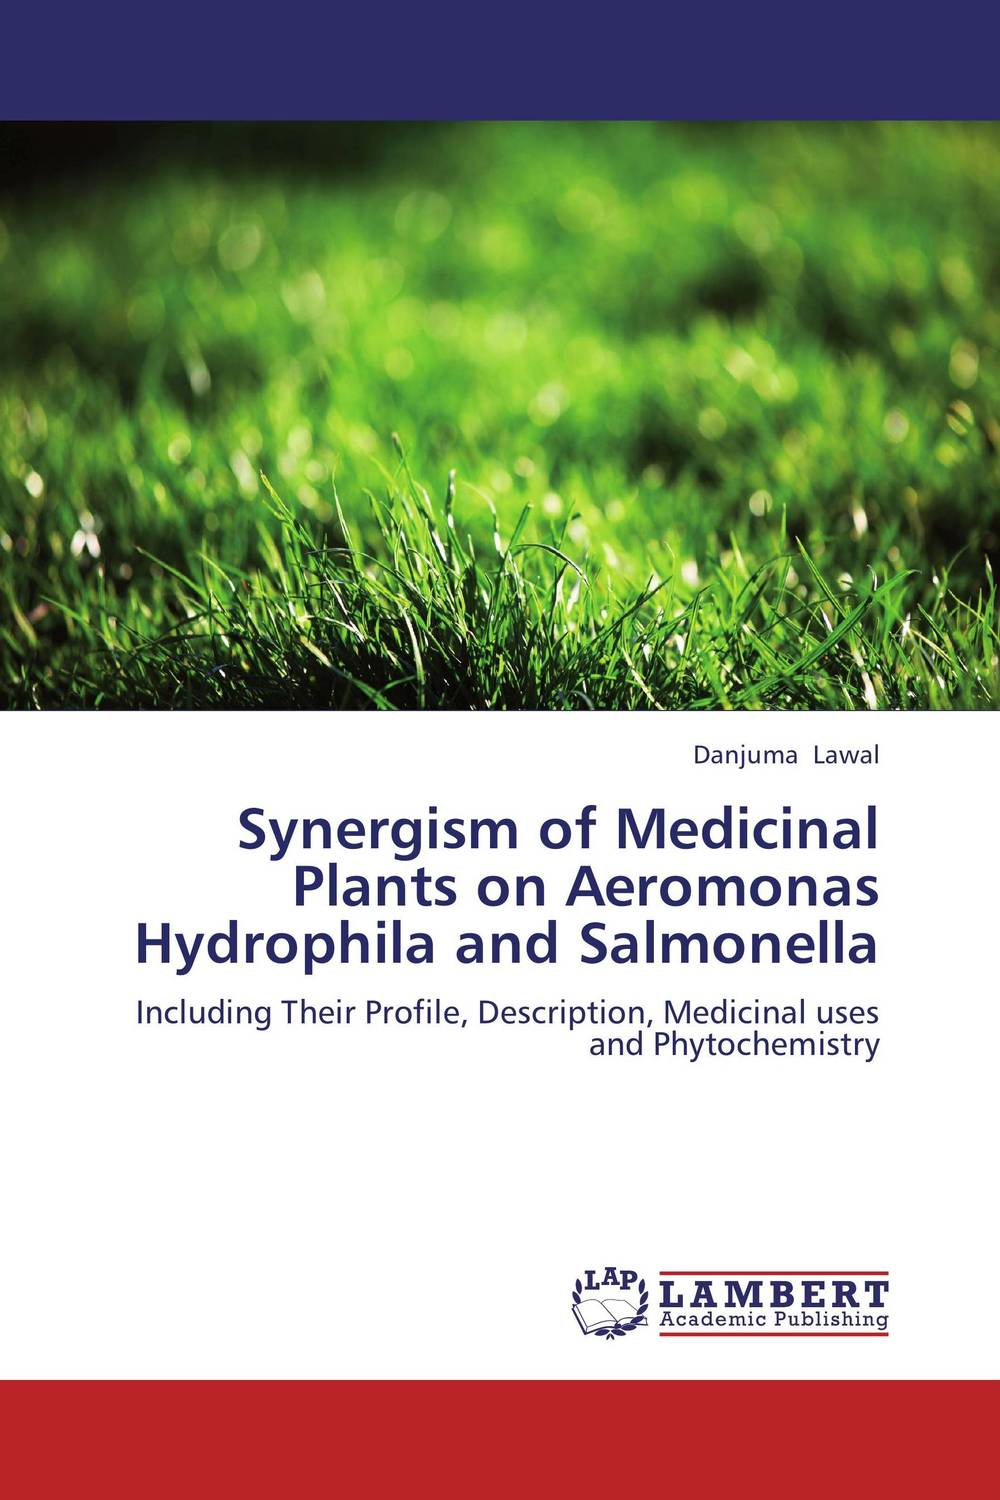 Synergism of Medicinal Plants on Aeromonas Hydrophila and Salmonella george varghese diana john and solomon habtemariam medicinal plants for kidney stone a monograph